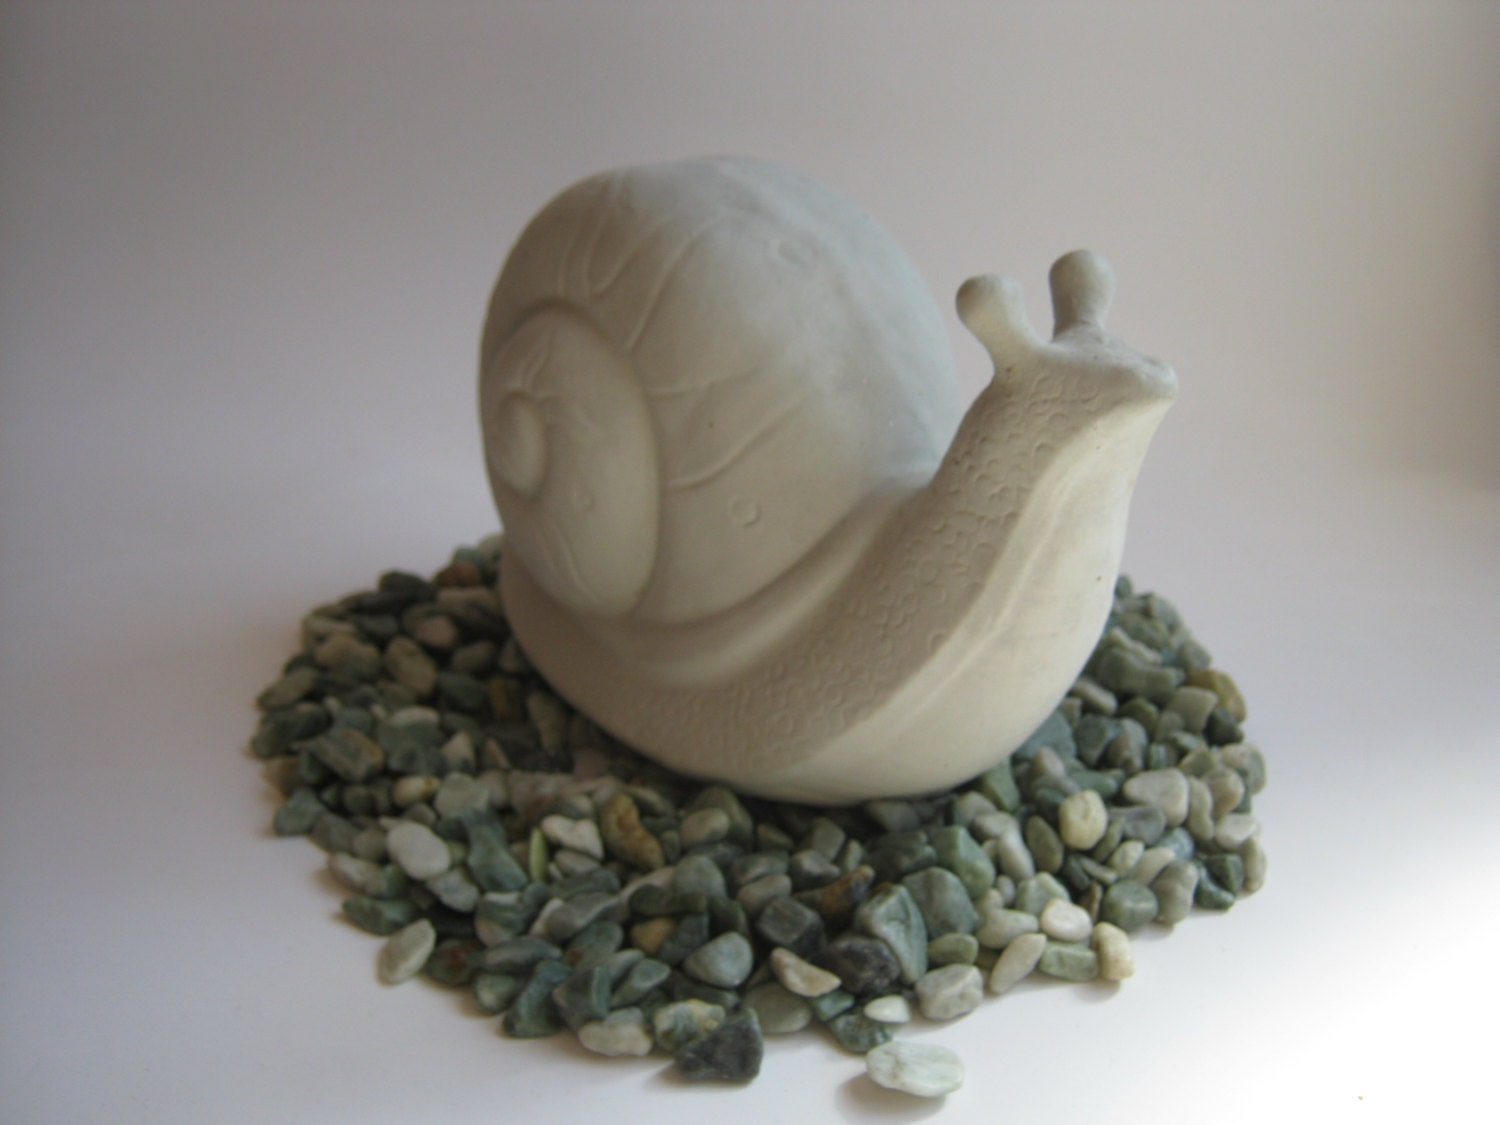 snail concrete statue for garden decor yard art cast in, Garden idea